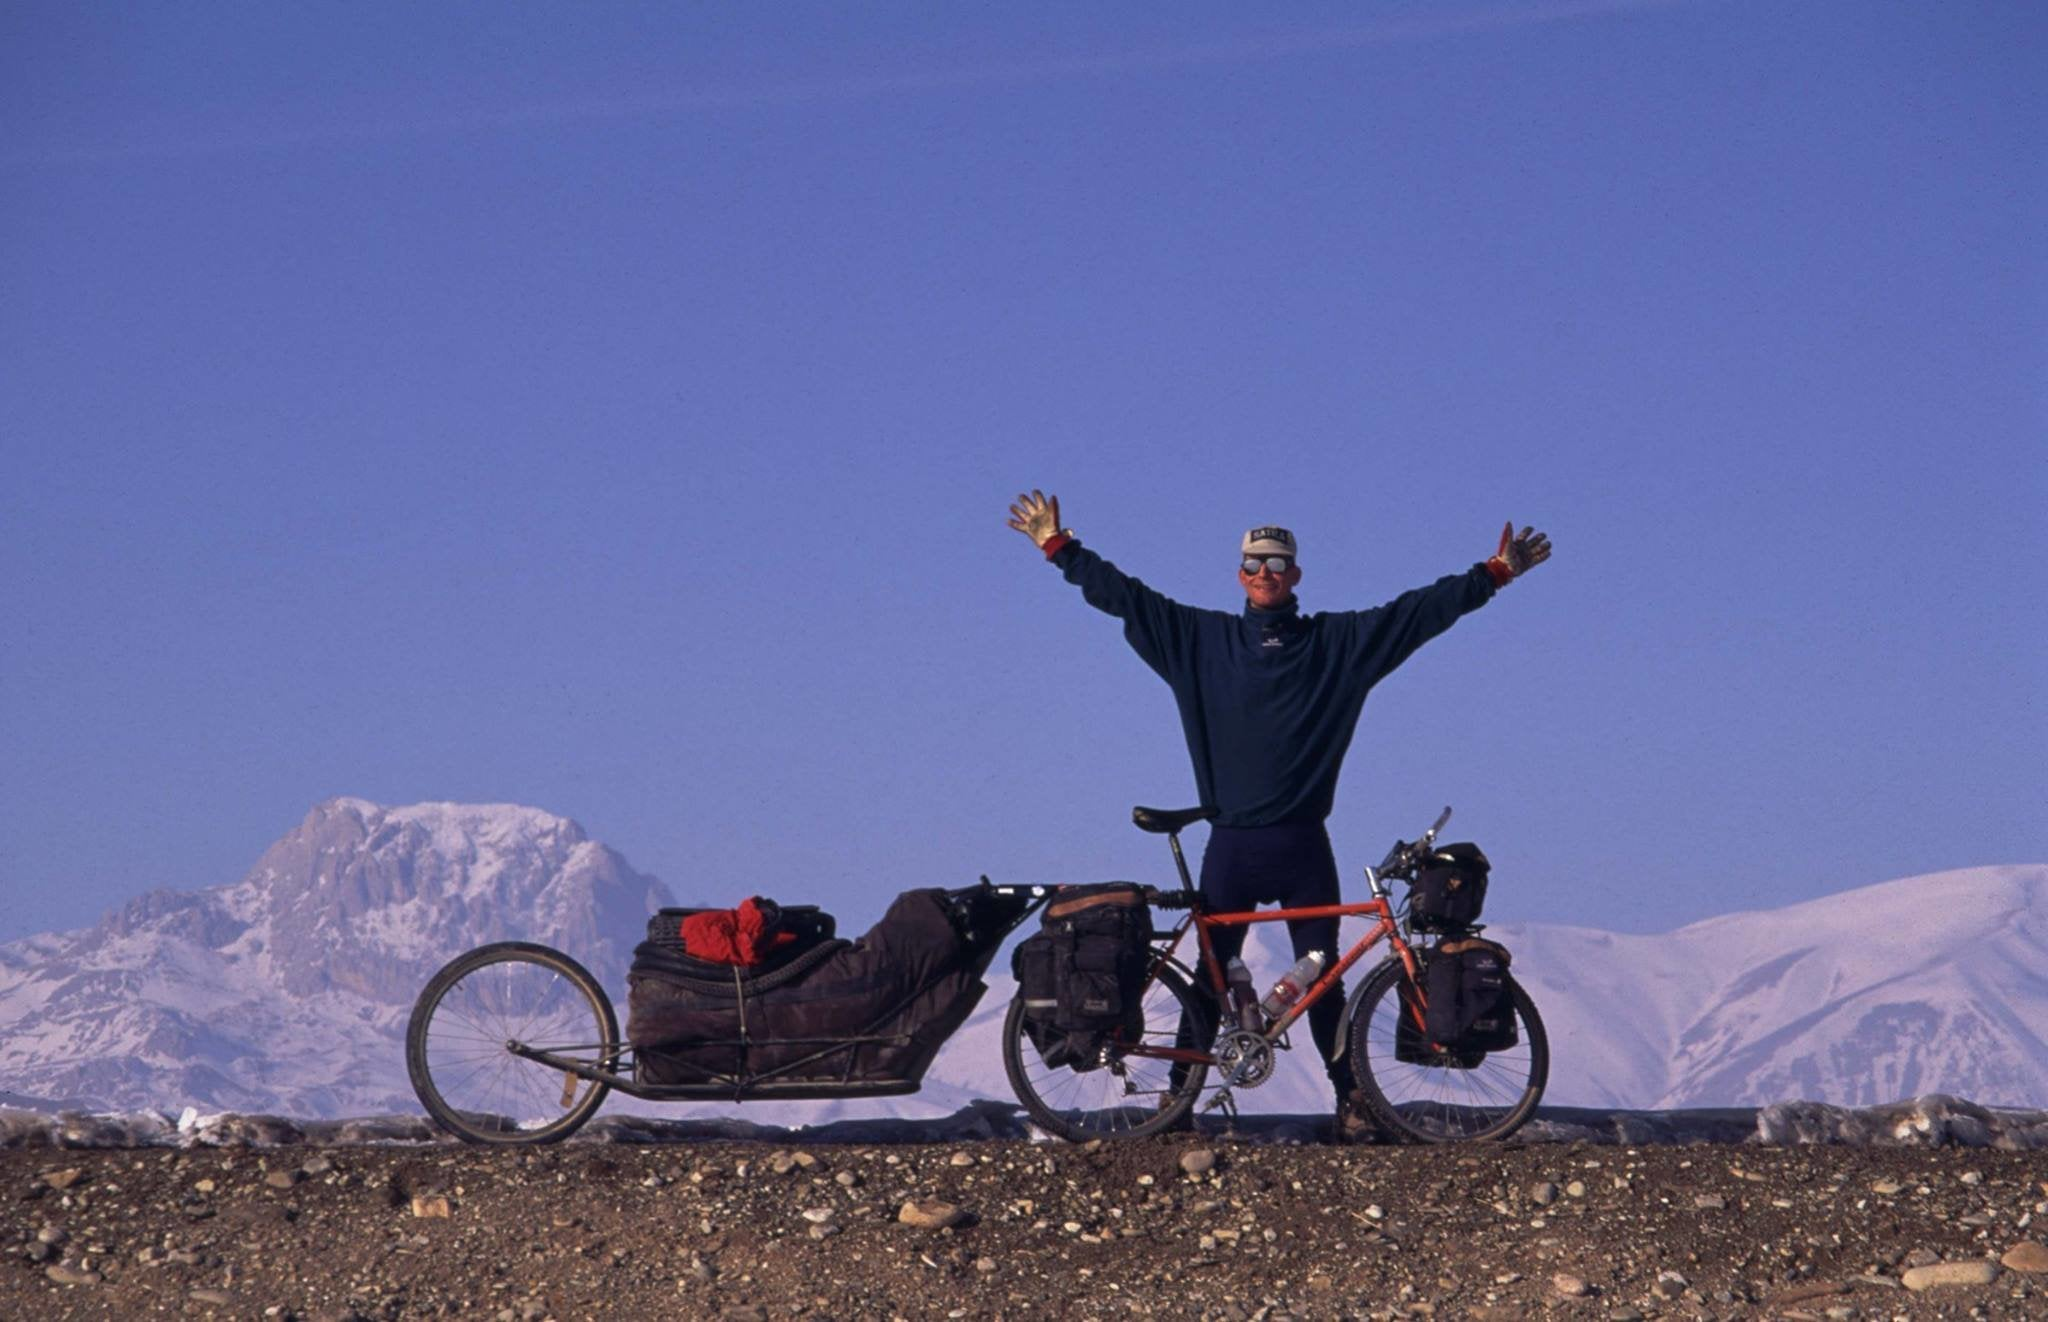 The 'crazy Swede' was a paratrooper who rode his bike to summit Everest